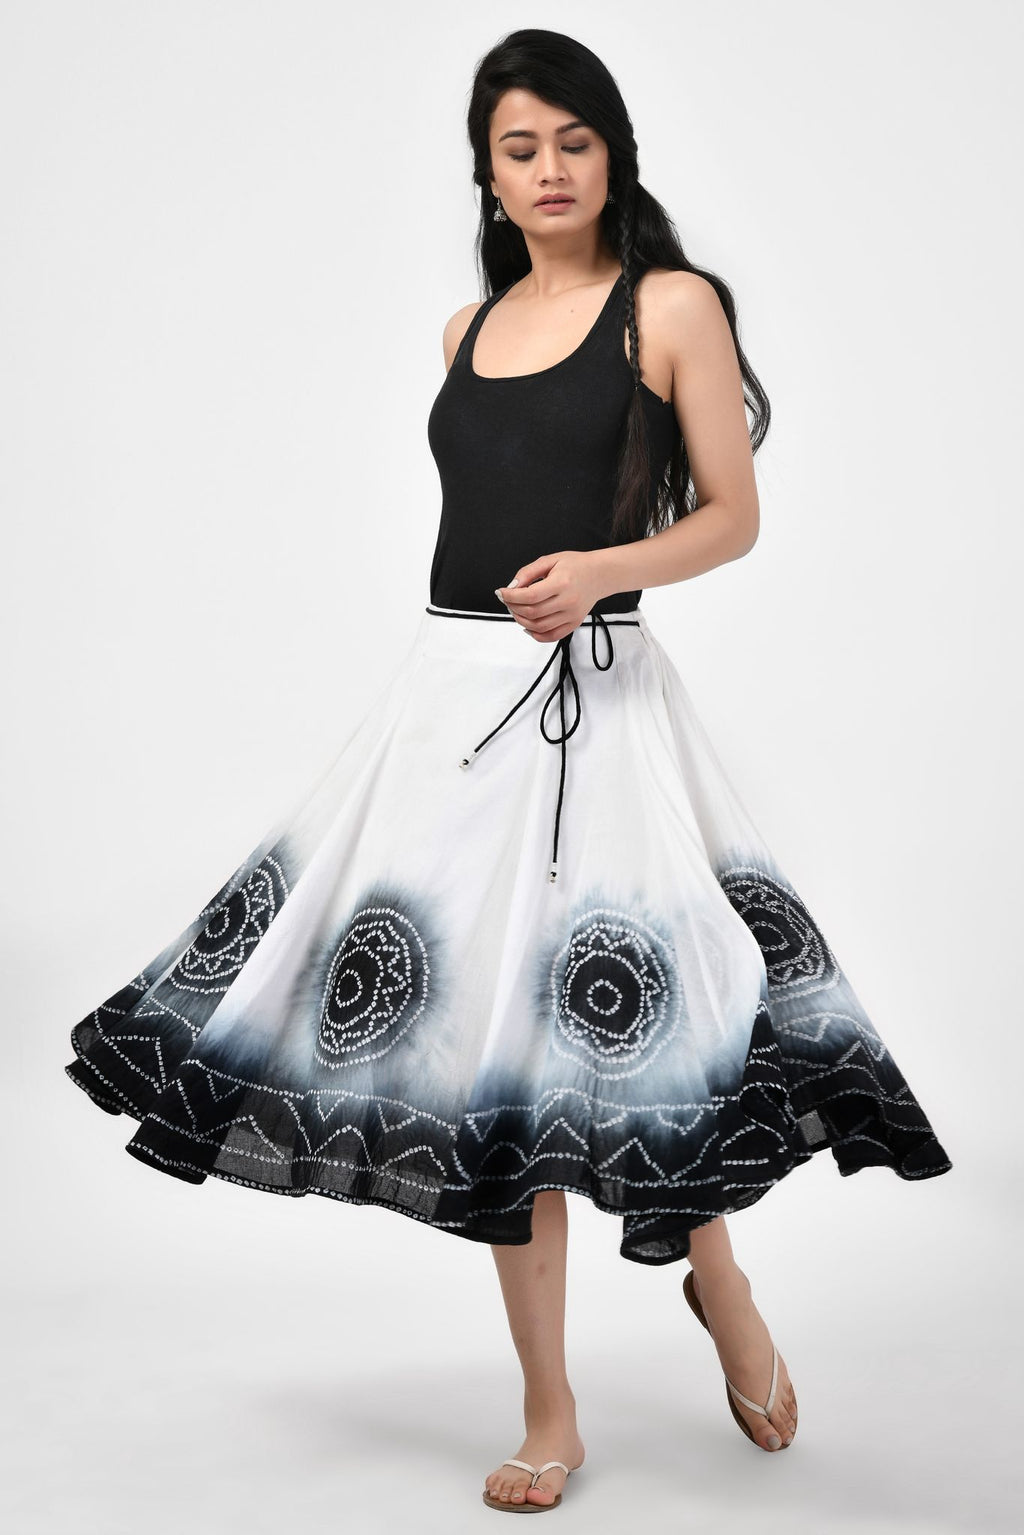 Tie & Dye Black & White Medium Length Skirt